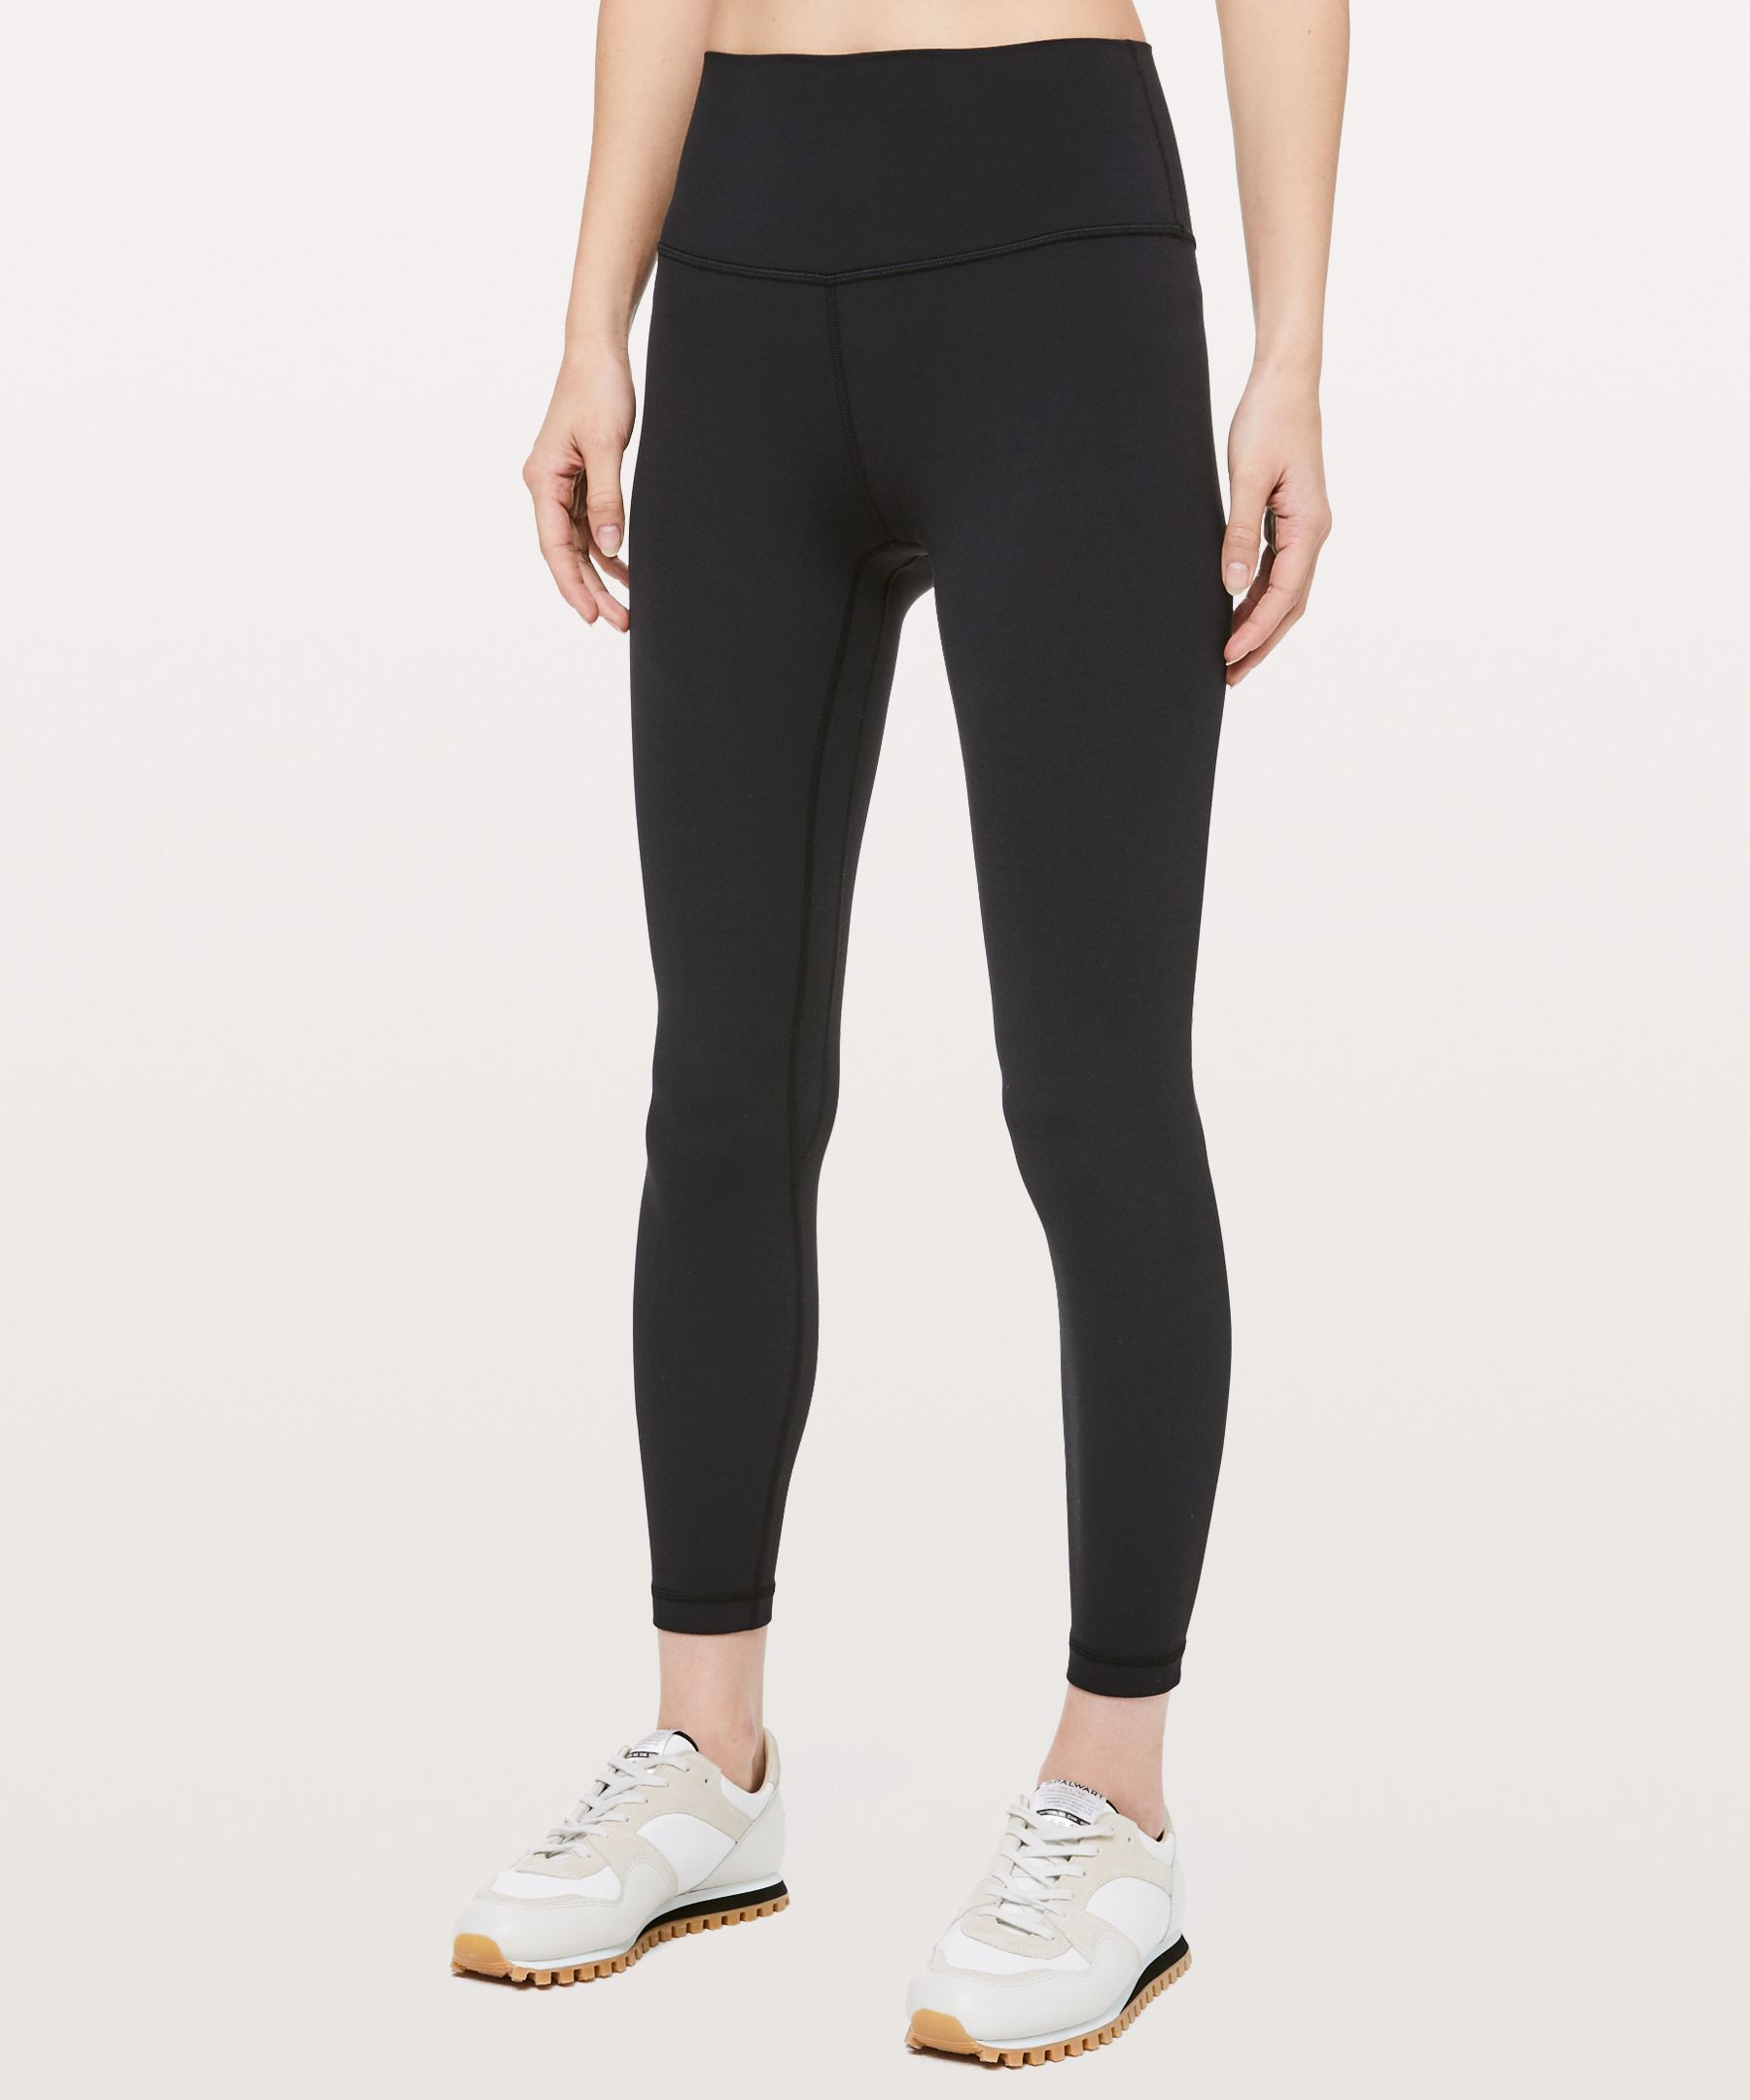 Align Pant Ii Lunar New Year New by Lululemon